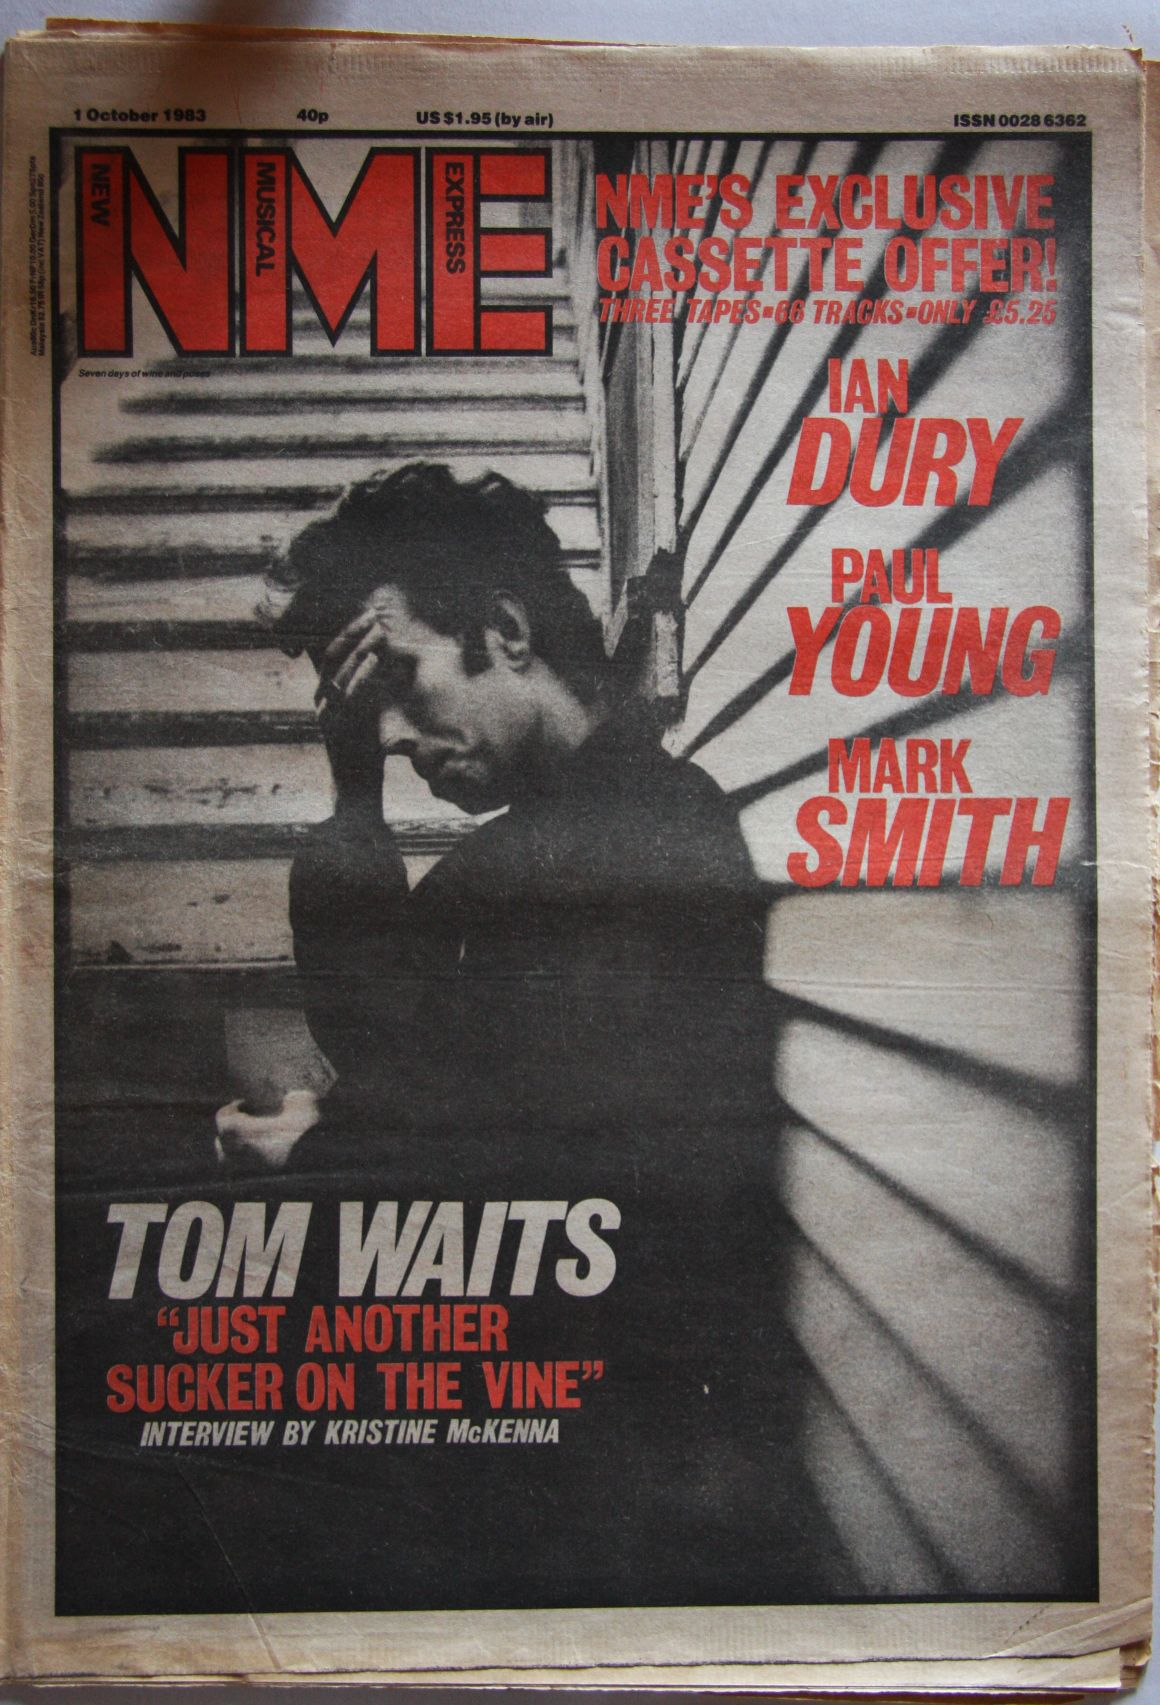 Uk Nme Magazine 1. Oct 1983